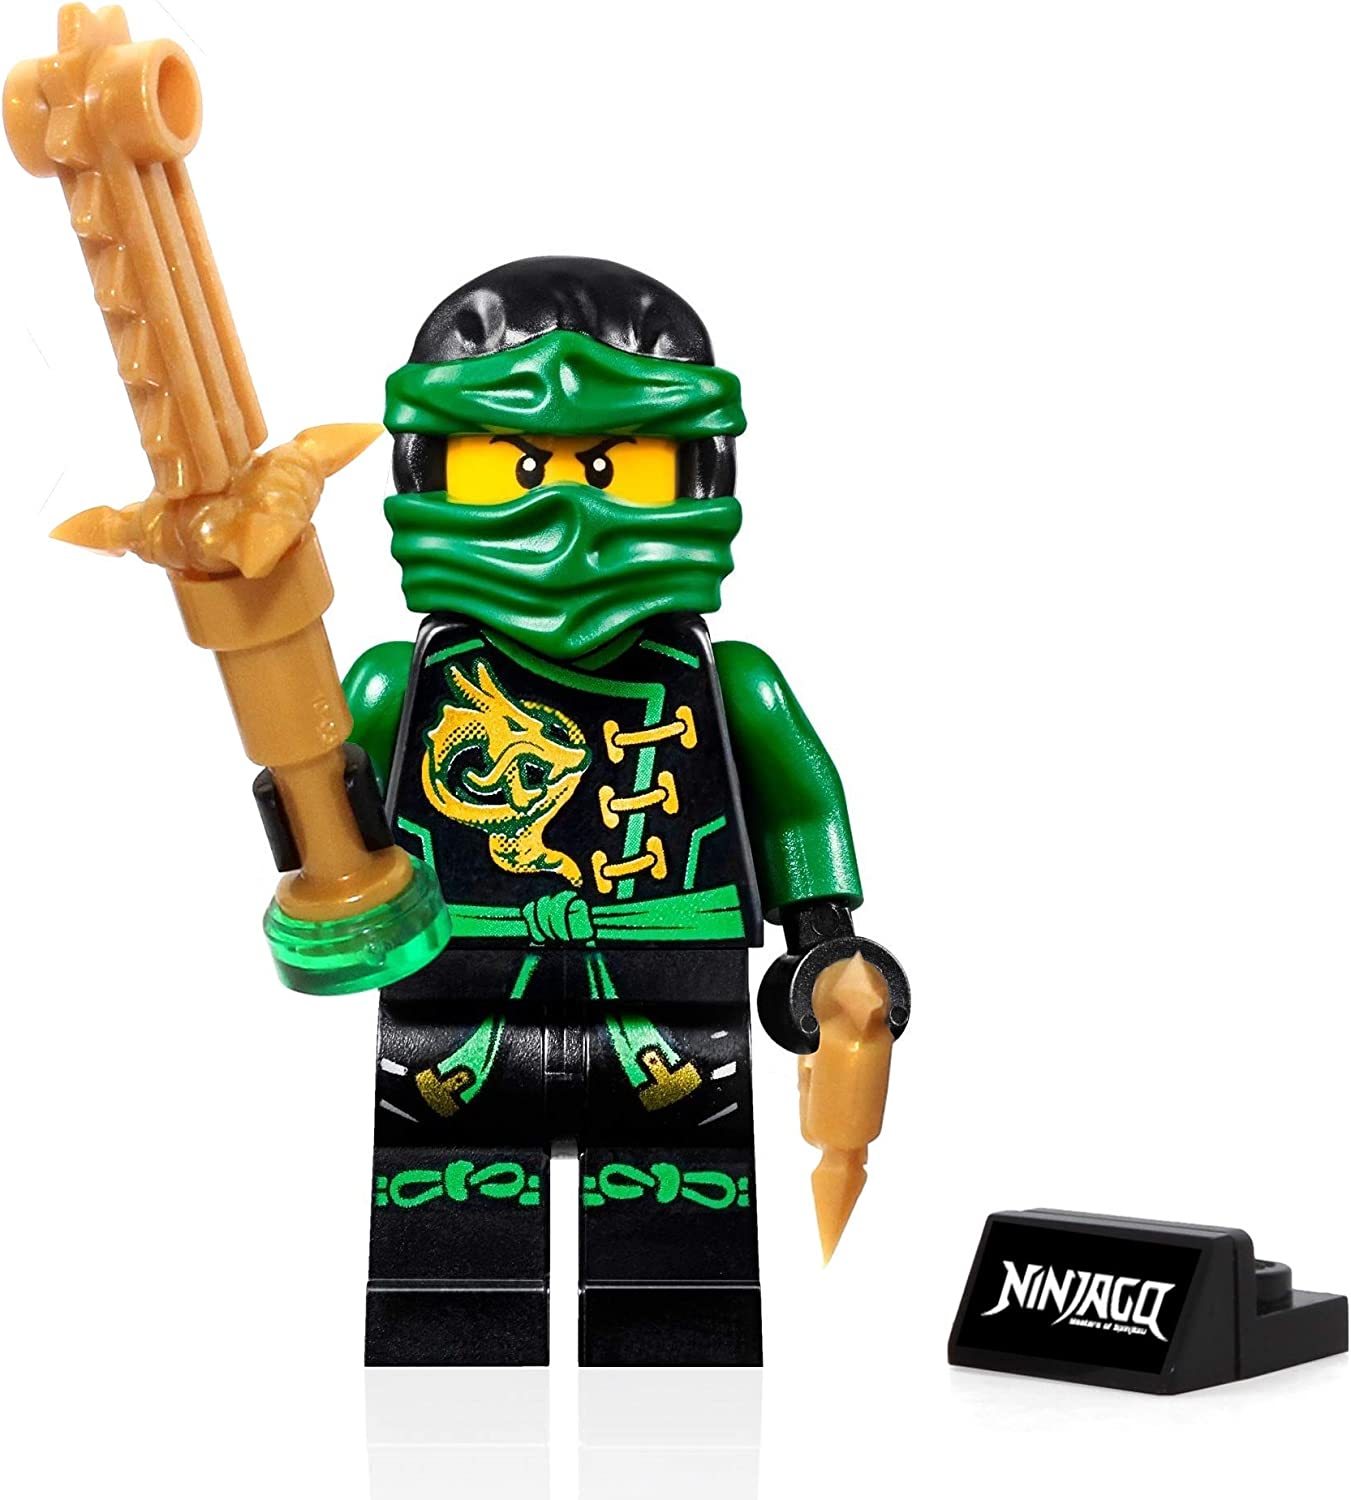 LEGO Ninjago Skybound Minifigure - Lloyd (Sky shark) with Gold Weapon 70601